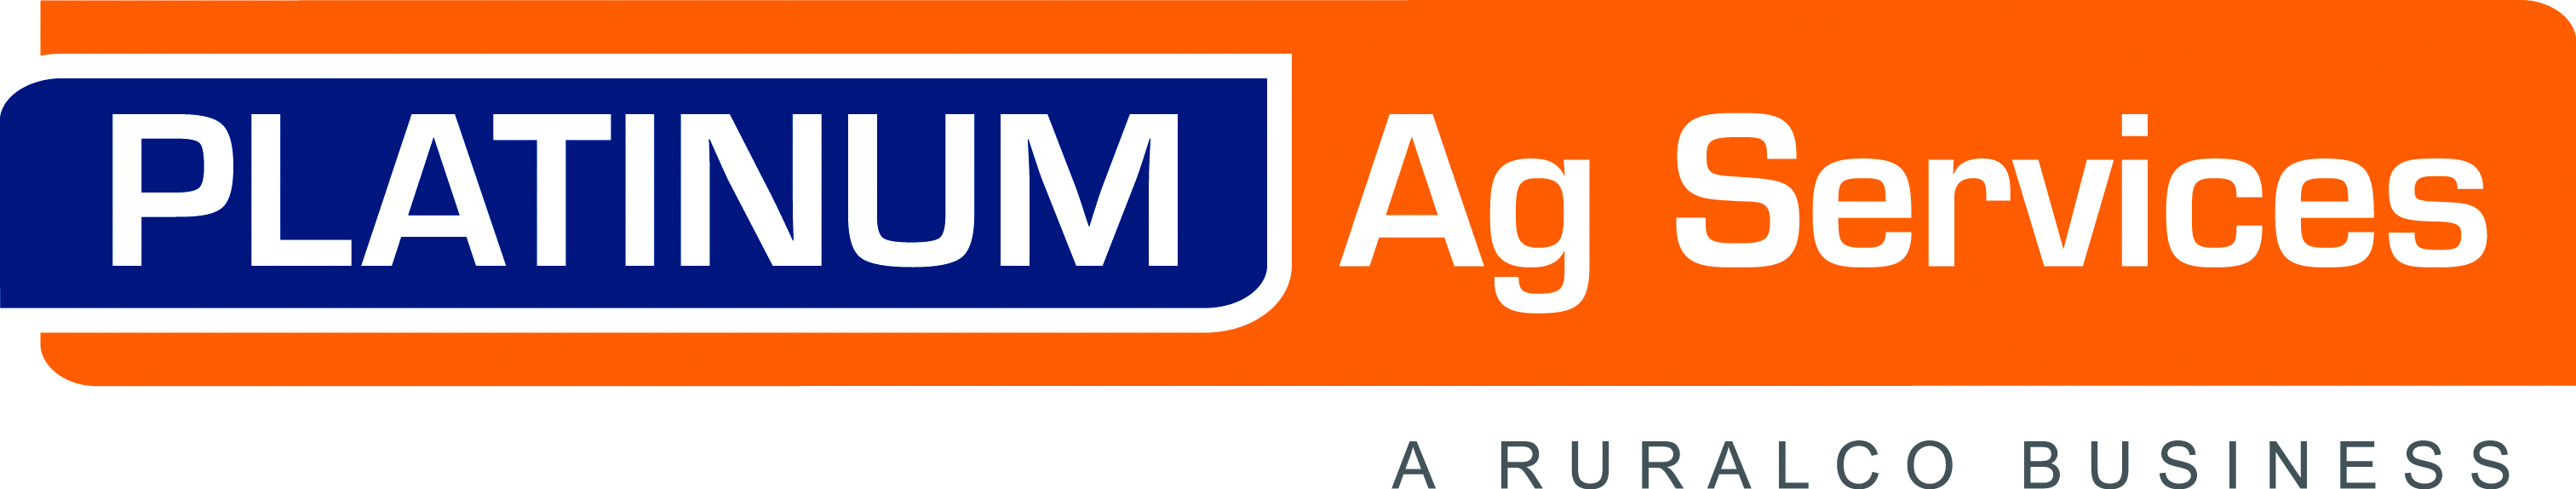 Platinum Ag Services